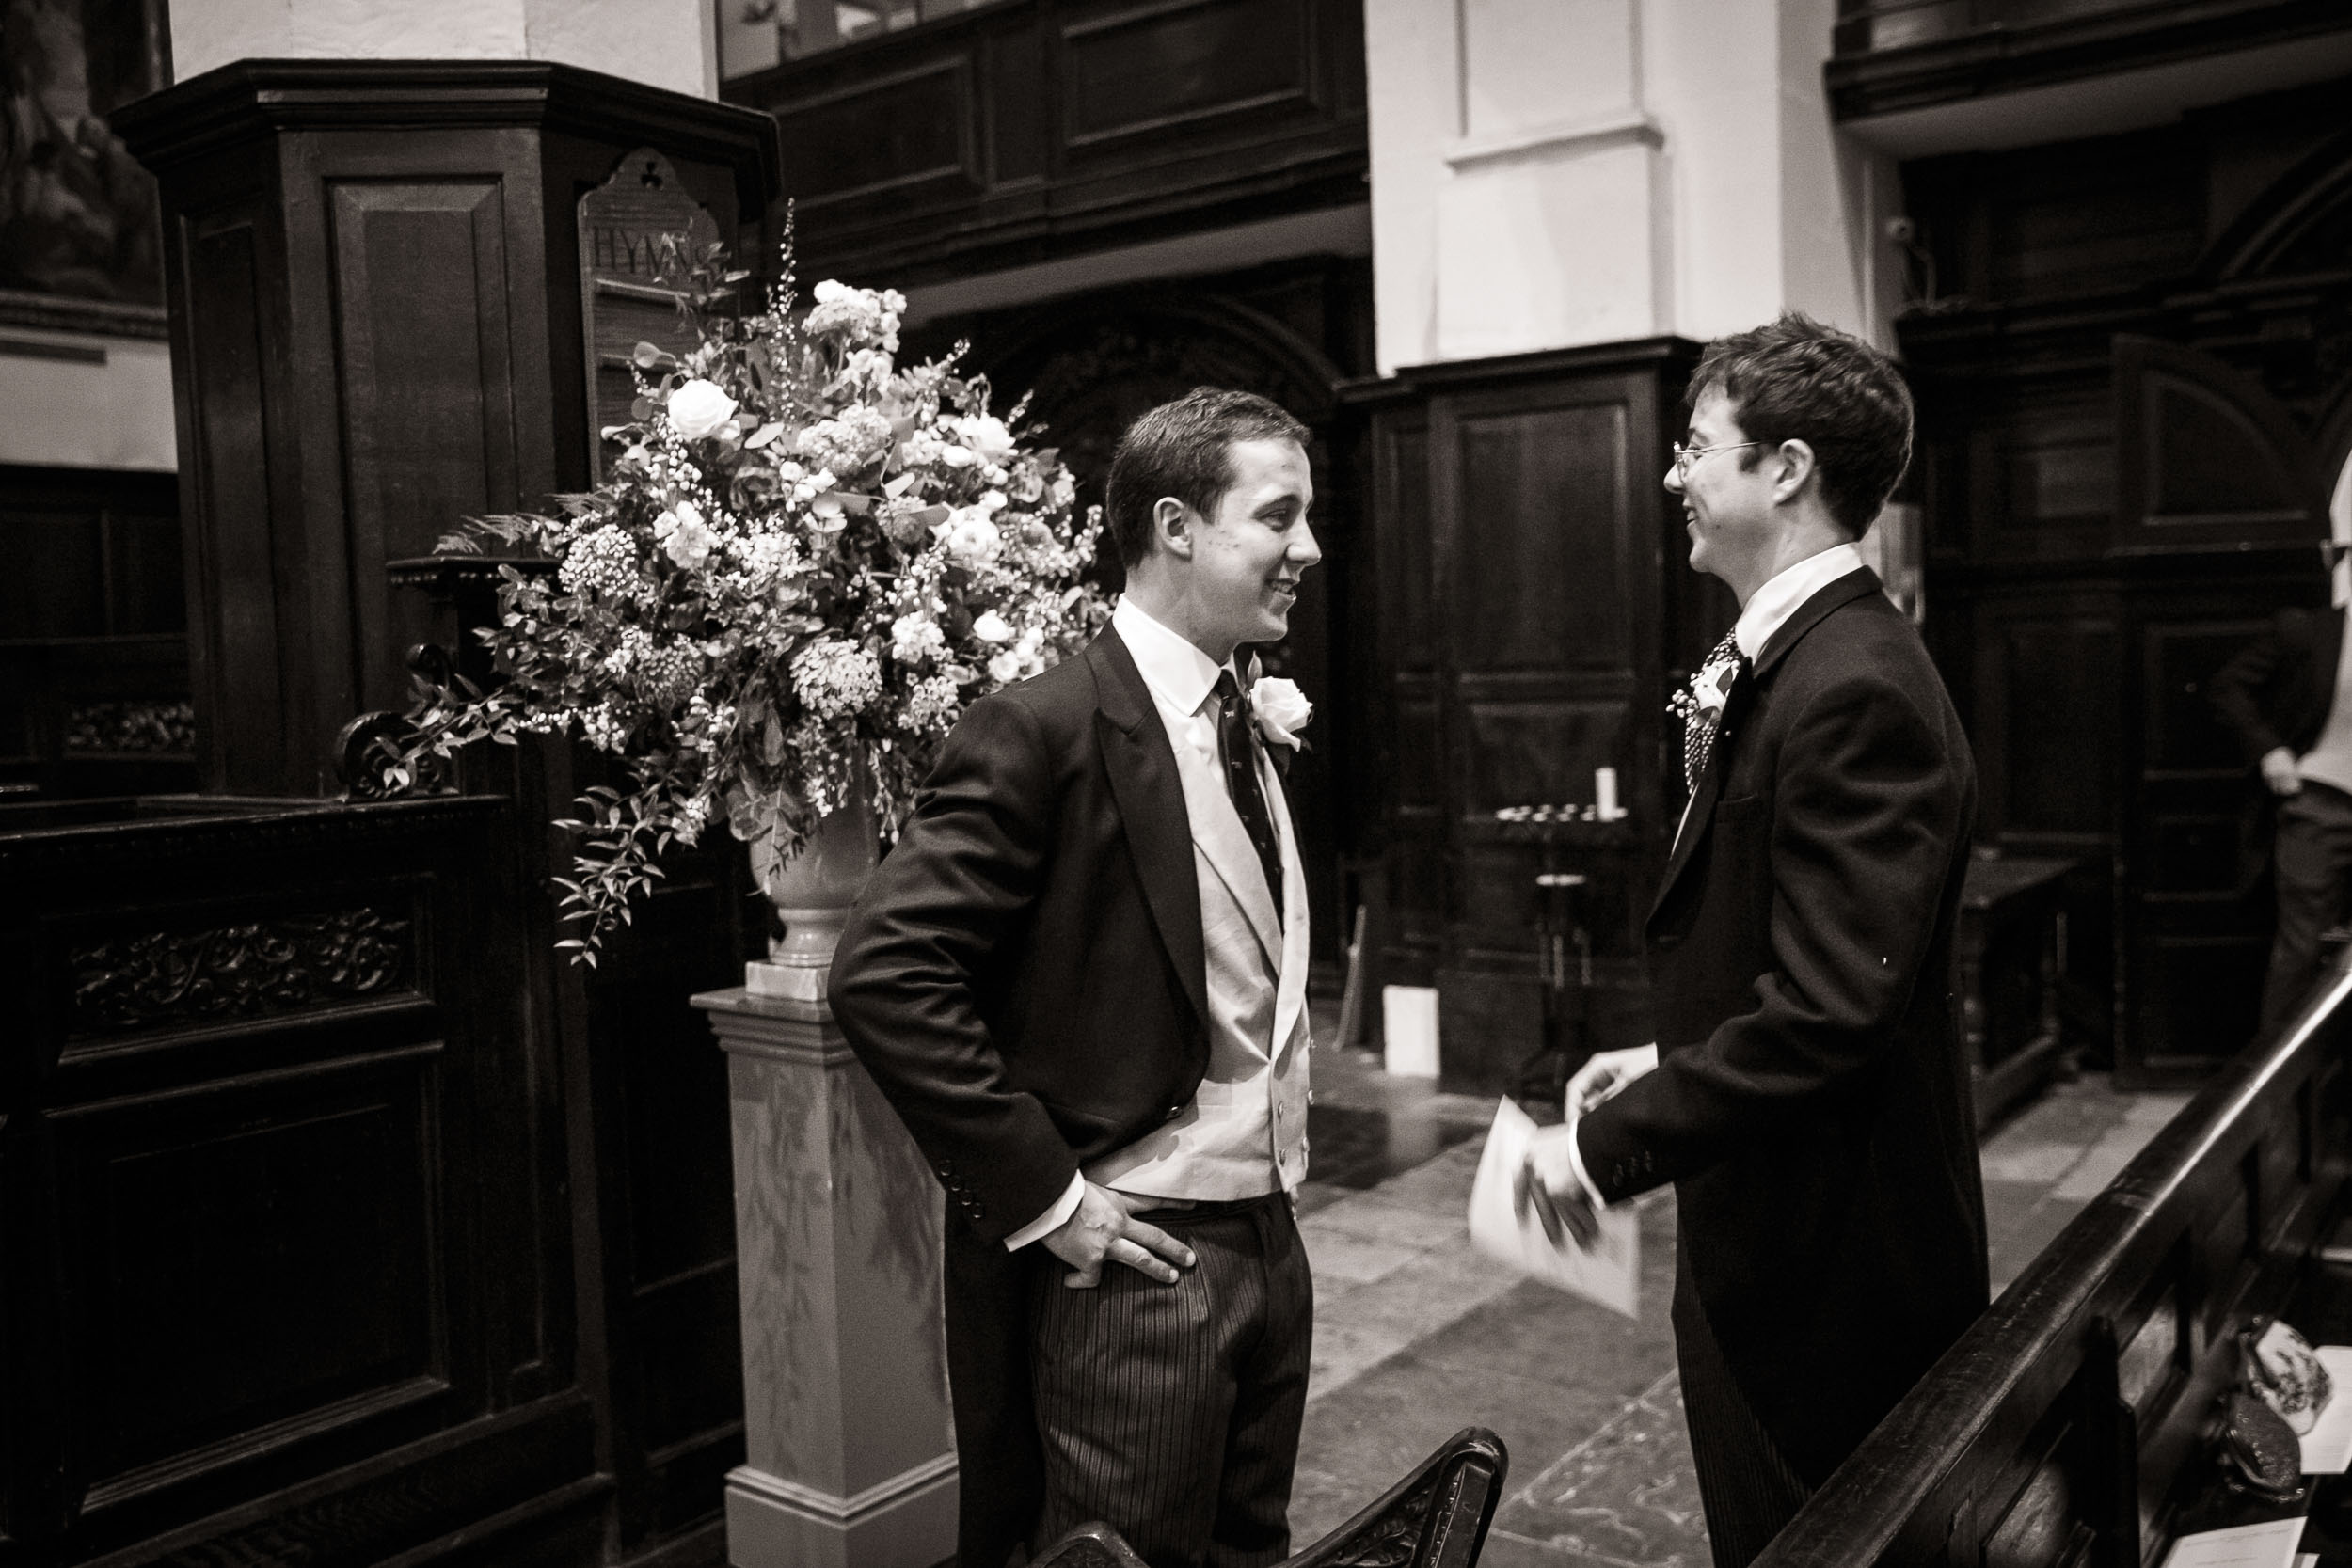 stationers-hall-wedding-photographer-london 015.jpg